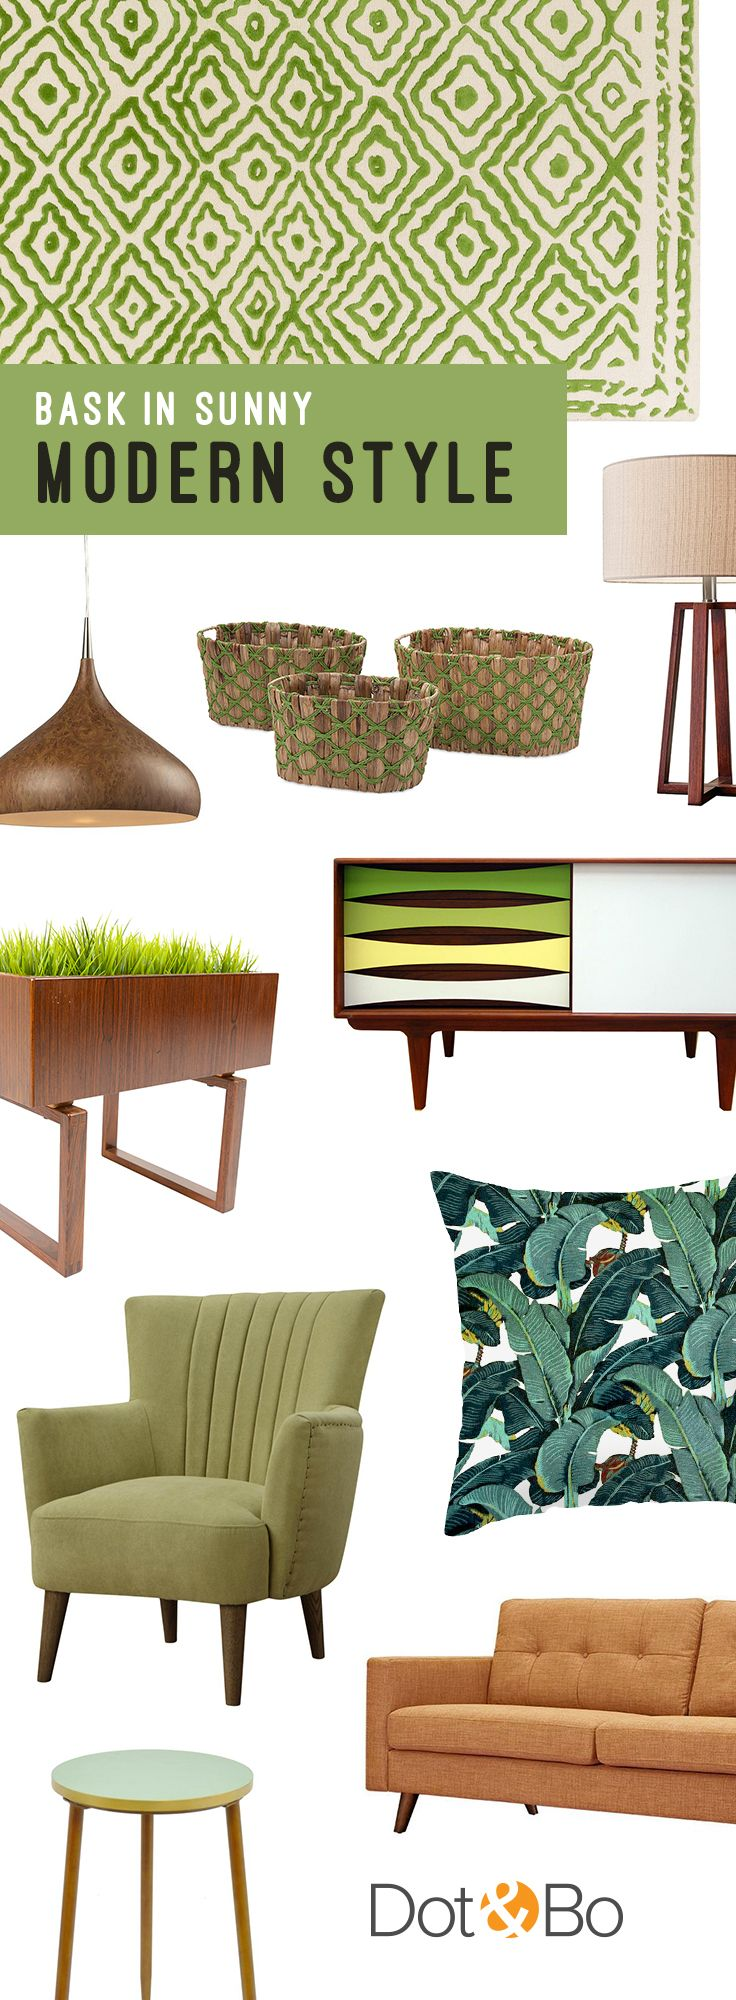 Modern Nature-Inspired Furniture & Décor | Shop Now at dotandbo.com